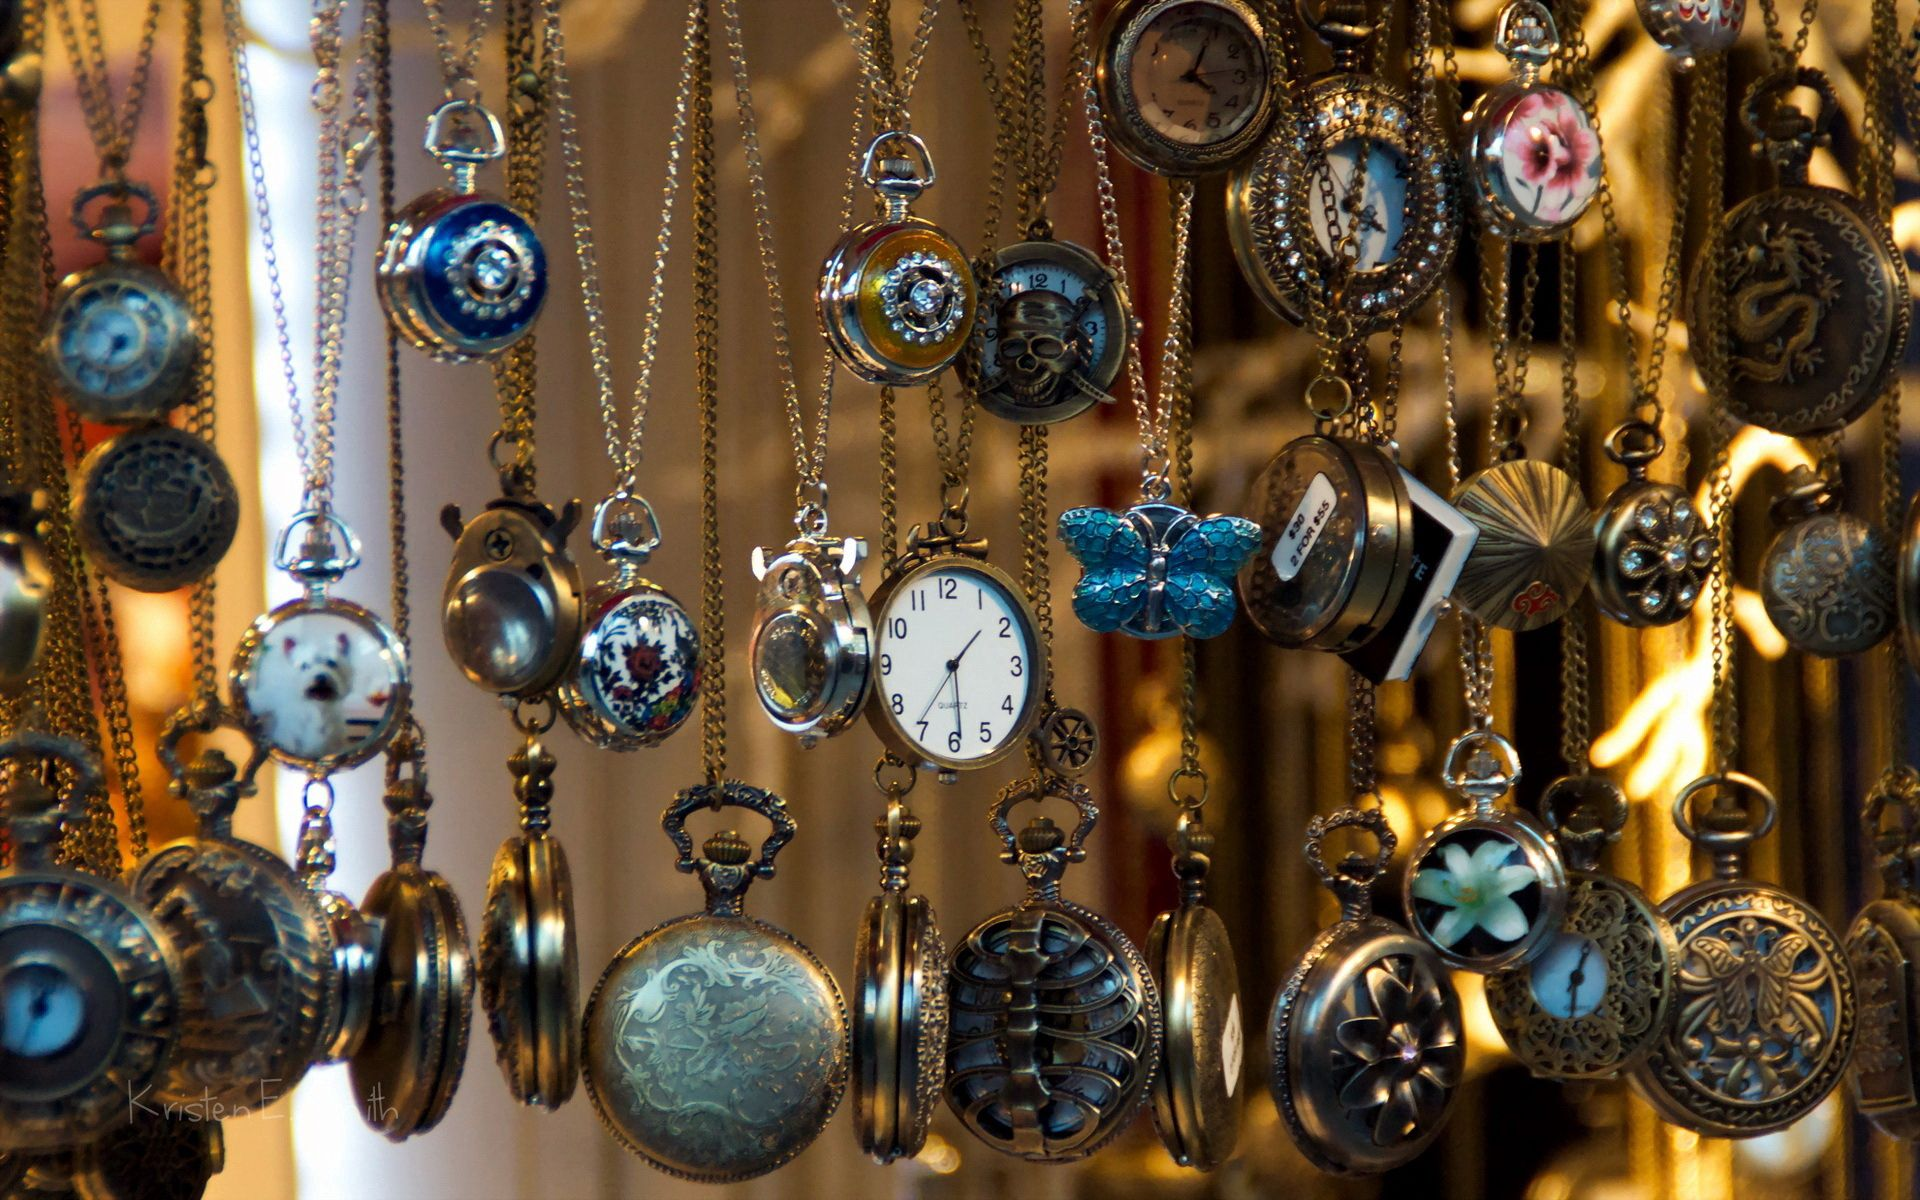 67414 download wallpaper Miscellanea, Miscellaneous, Time, It's Time, Background, Clock screensavers and pictures for free